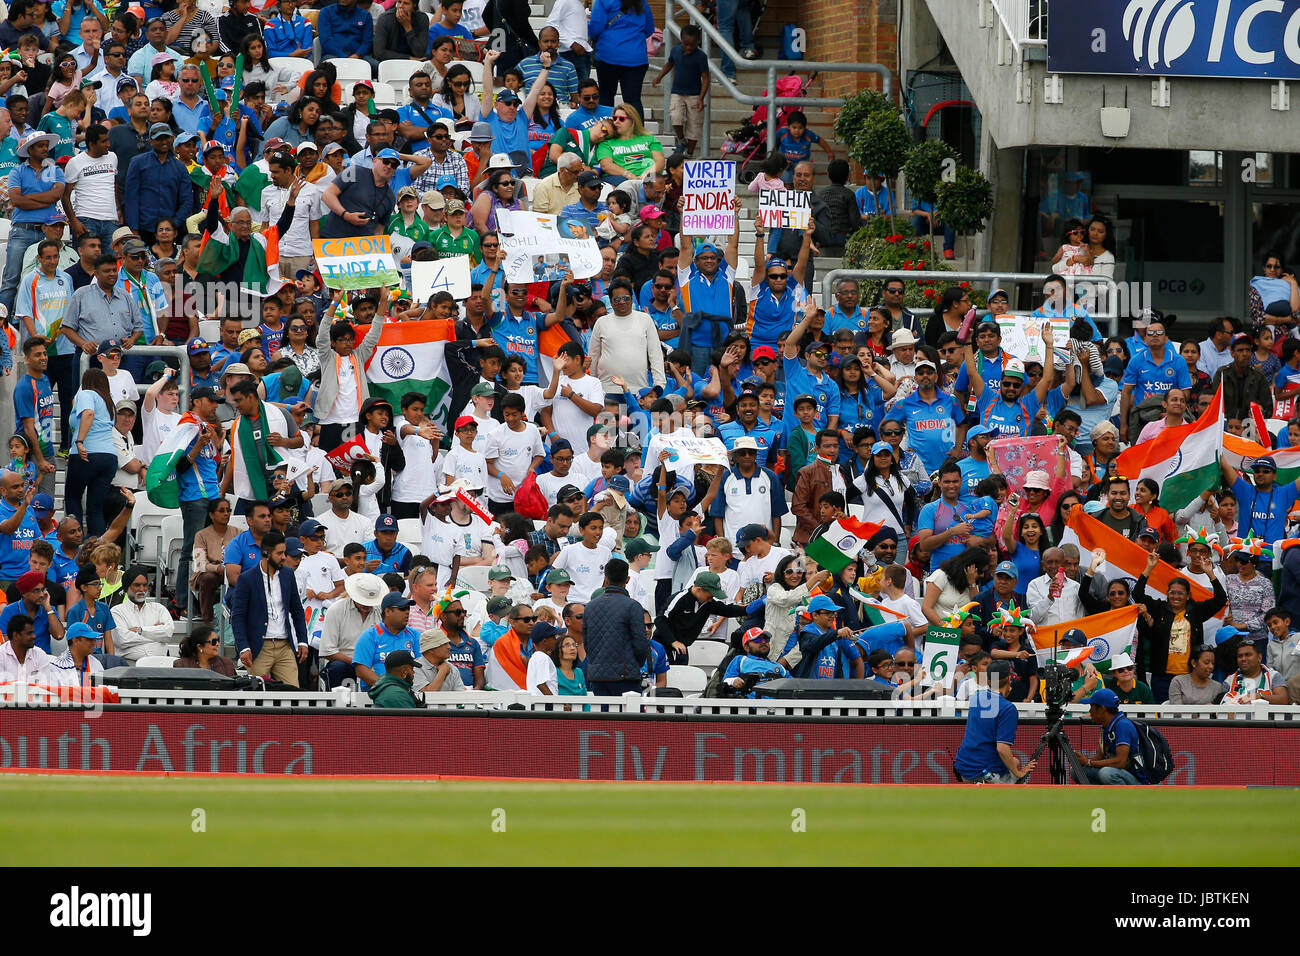 Indian supporters and fans seen during the ICC Champions Trophy 2017 match between India and South Africa at The Stock Photo